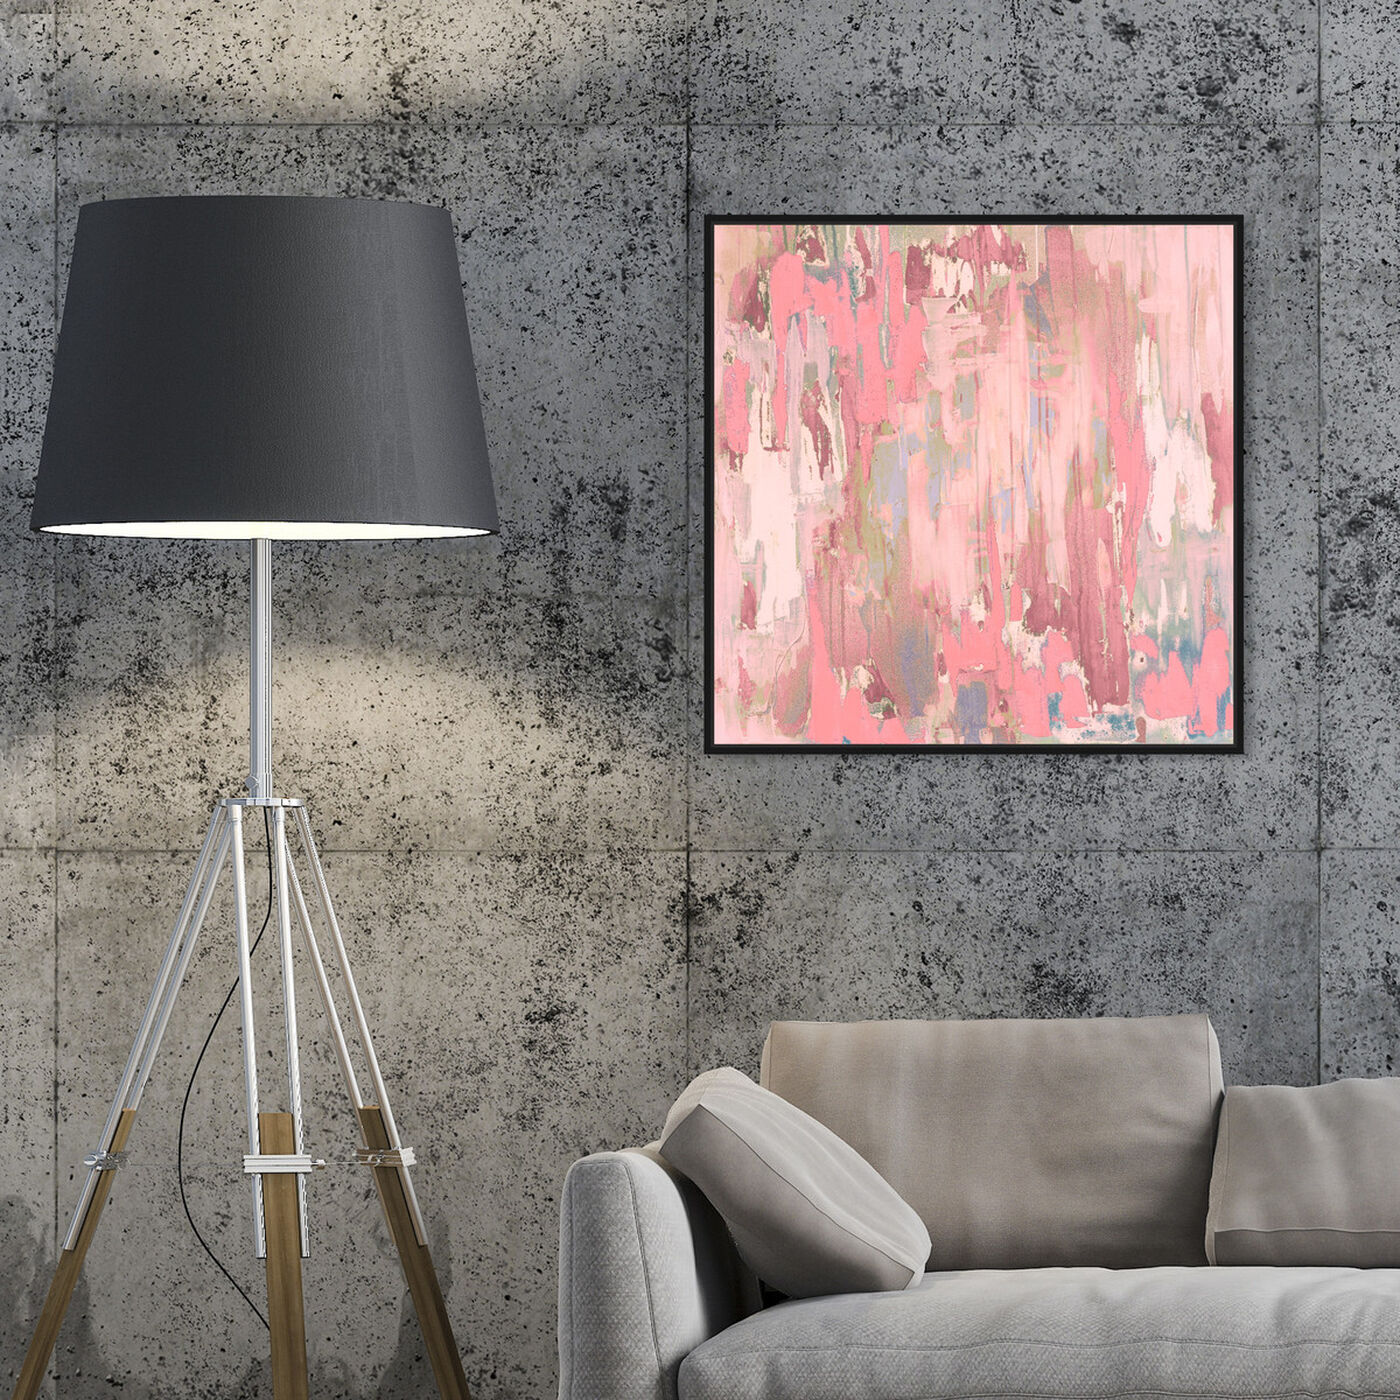 Hanging view of Marissa Anderson - Blush Swan Lake featuring abstract and paint art.